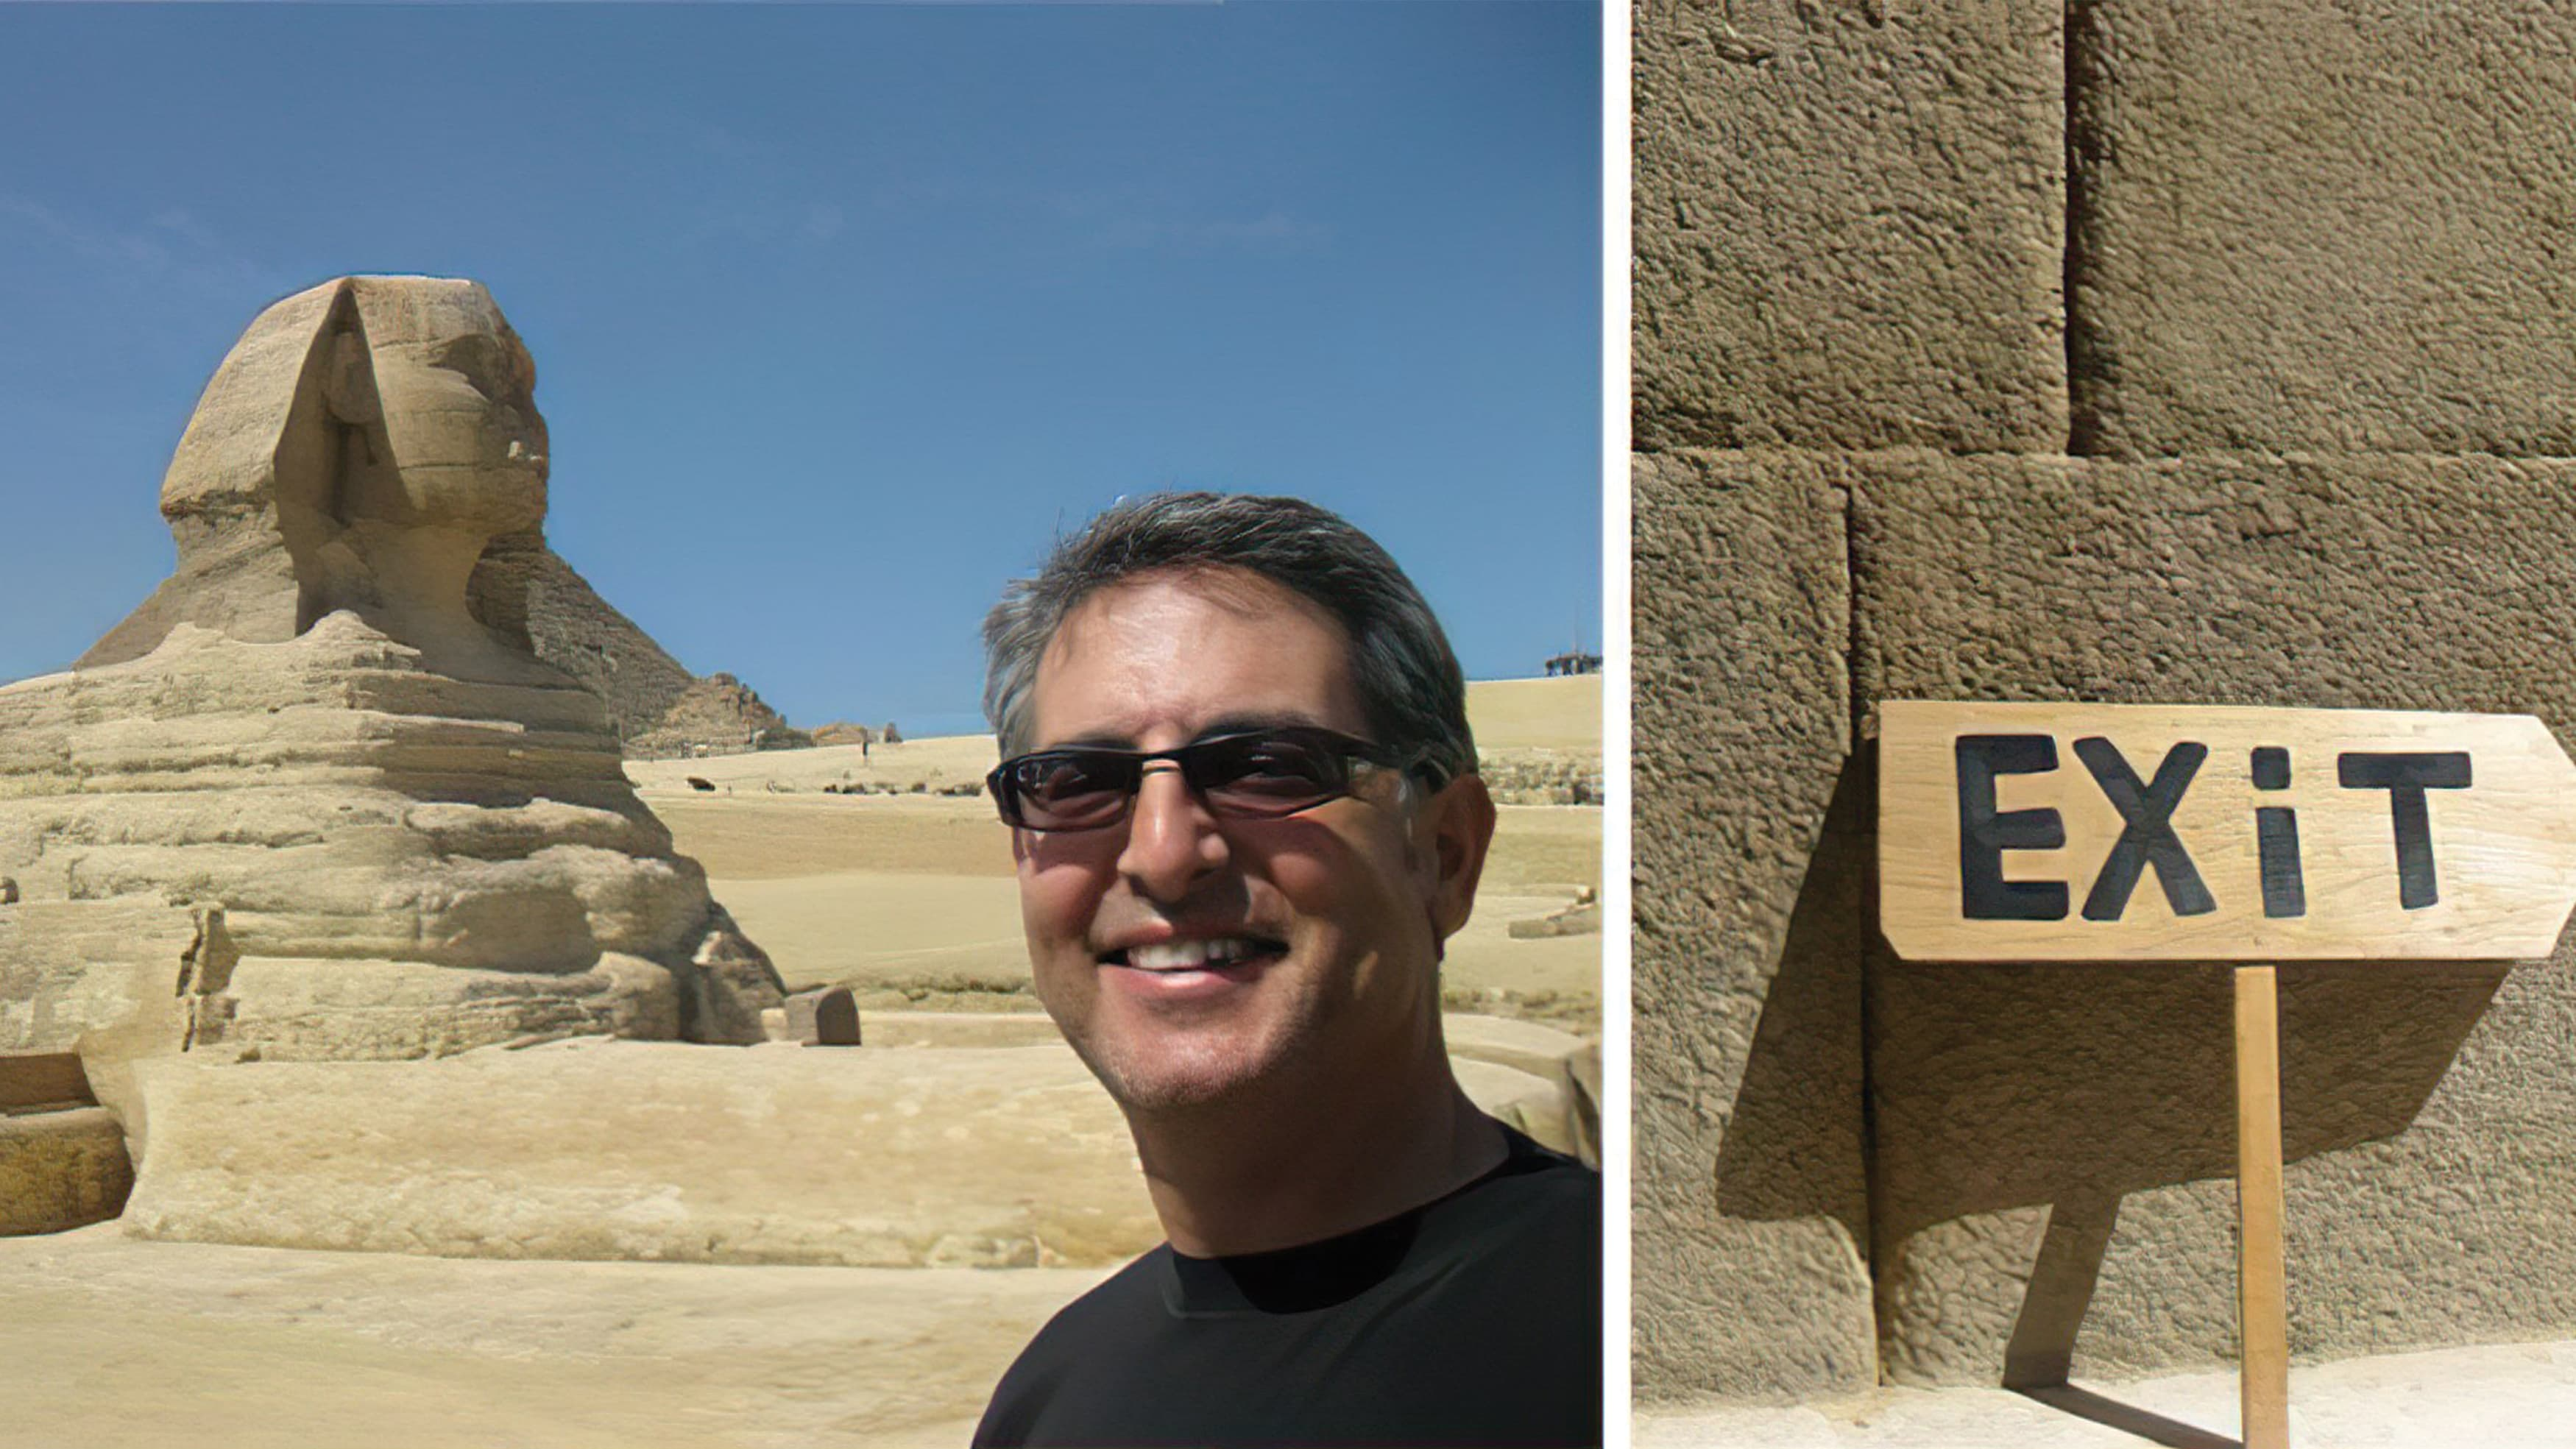 Martin Schwartz in front of the Great Sphinx in Giza